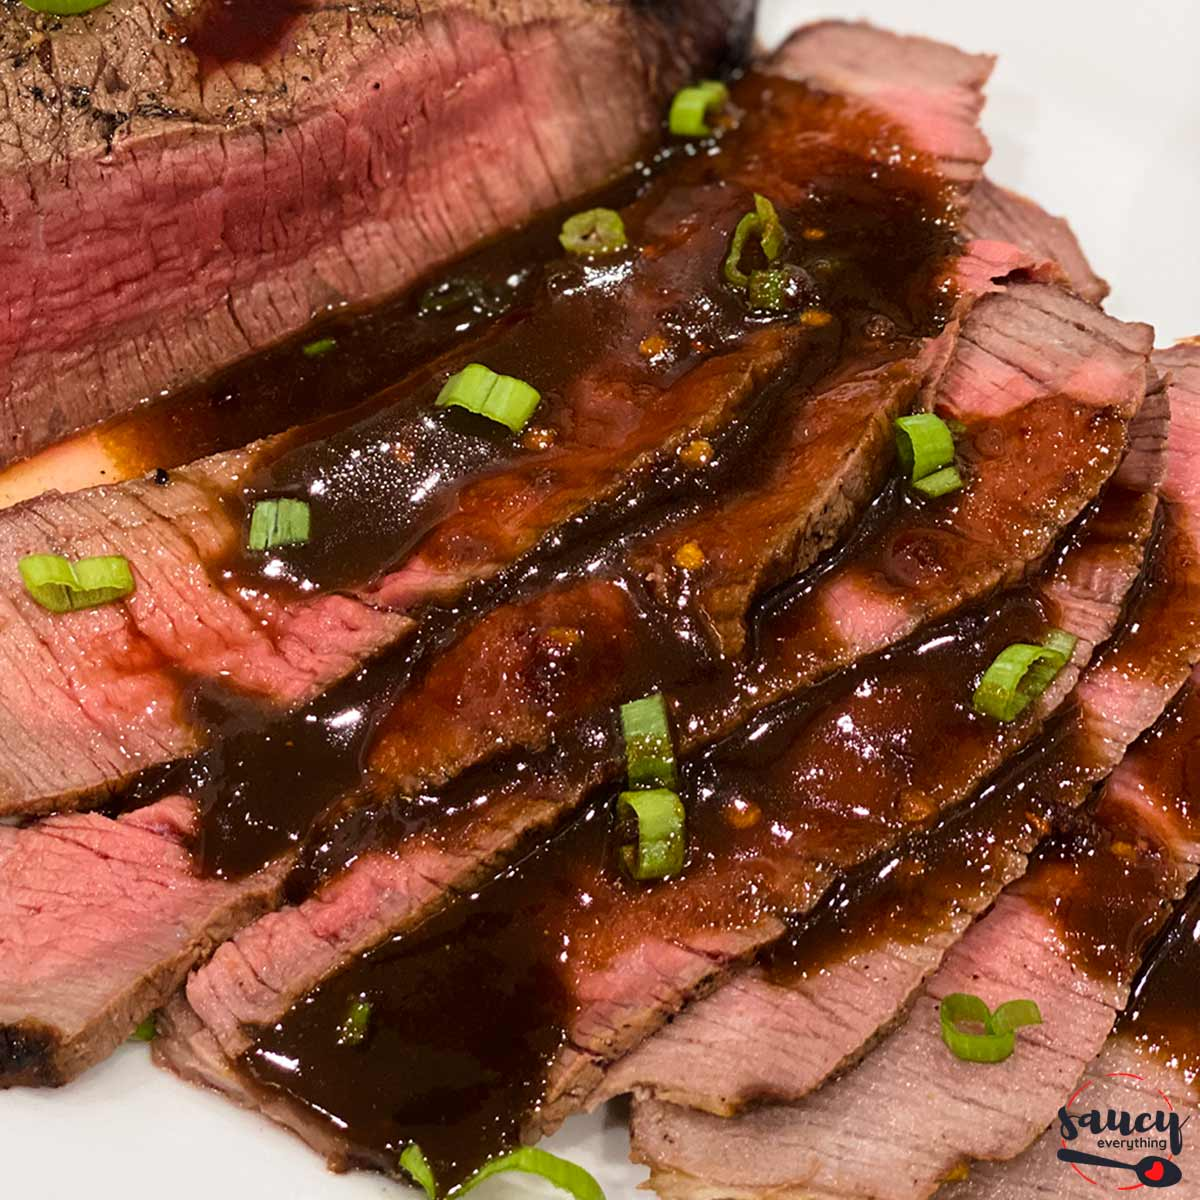 Slices of grilled london broil covered in sauce and green onions